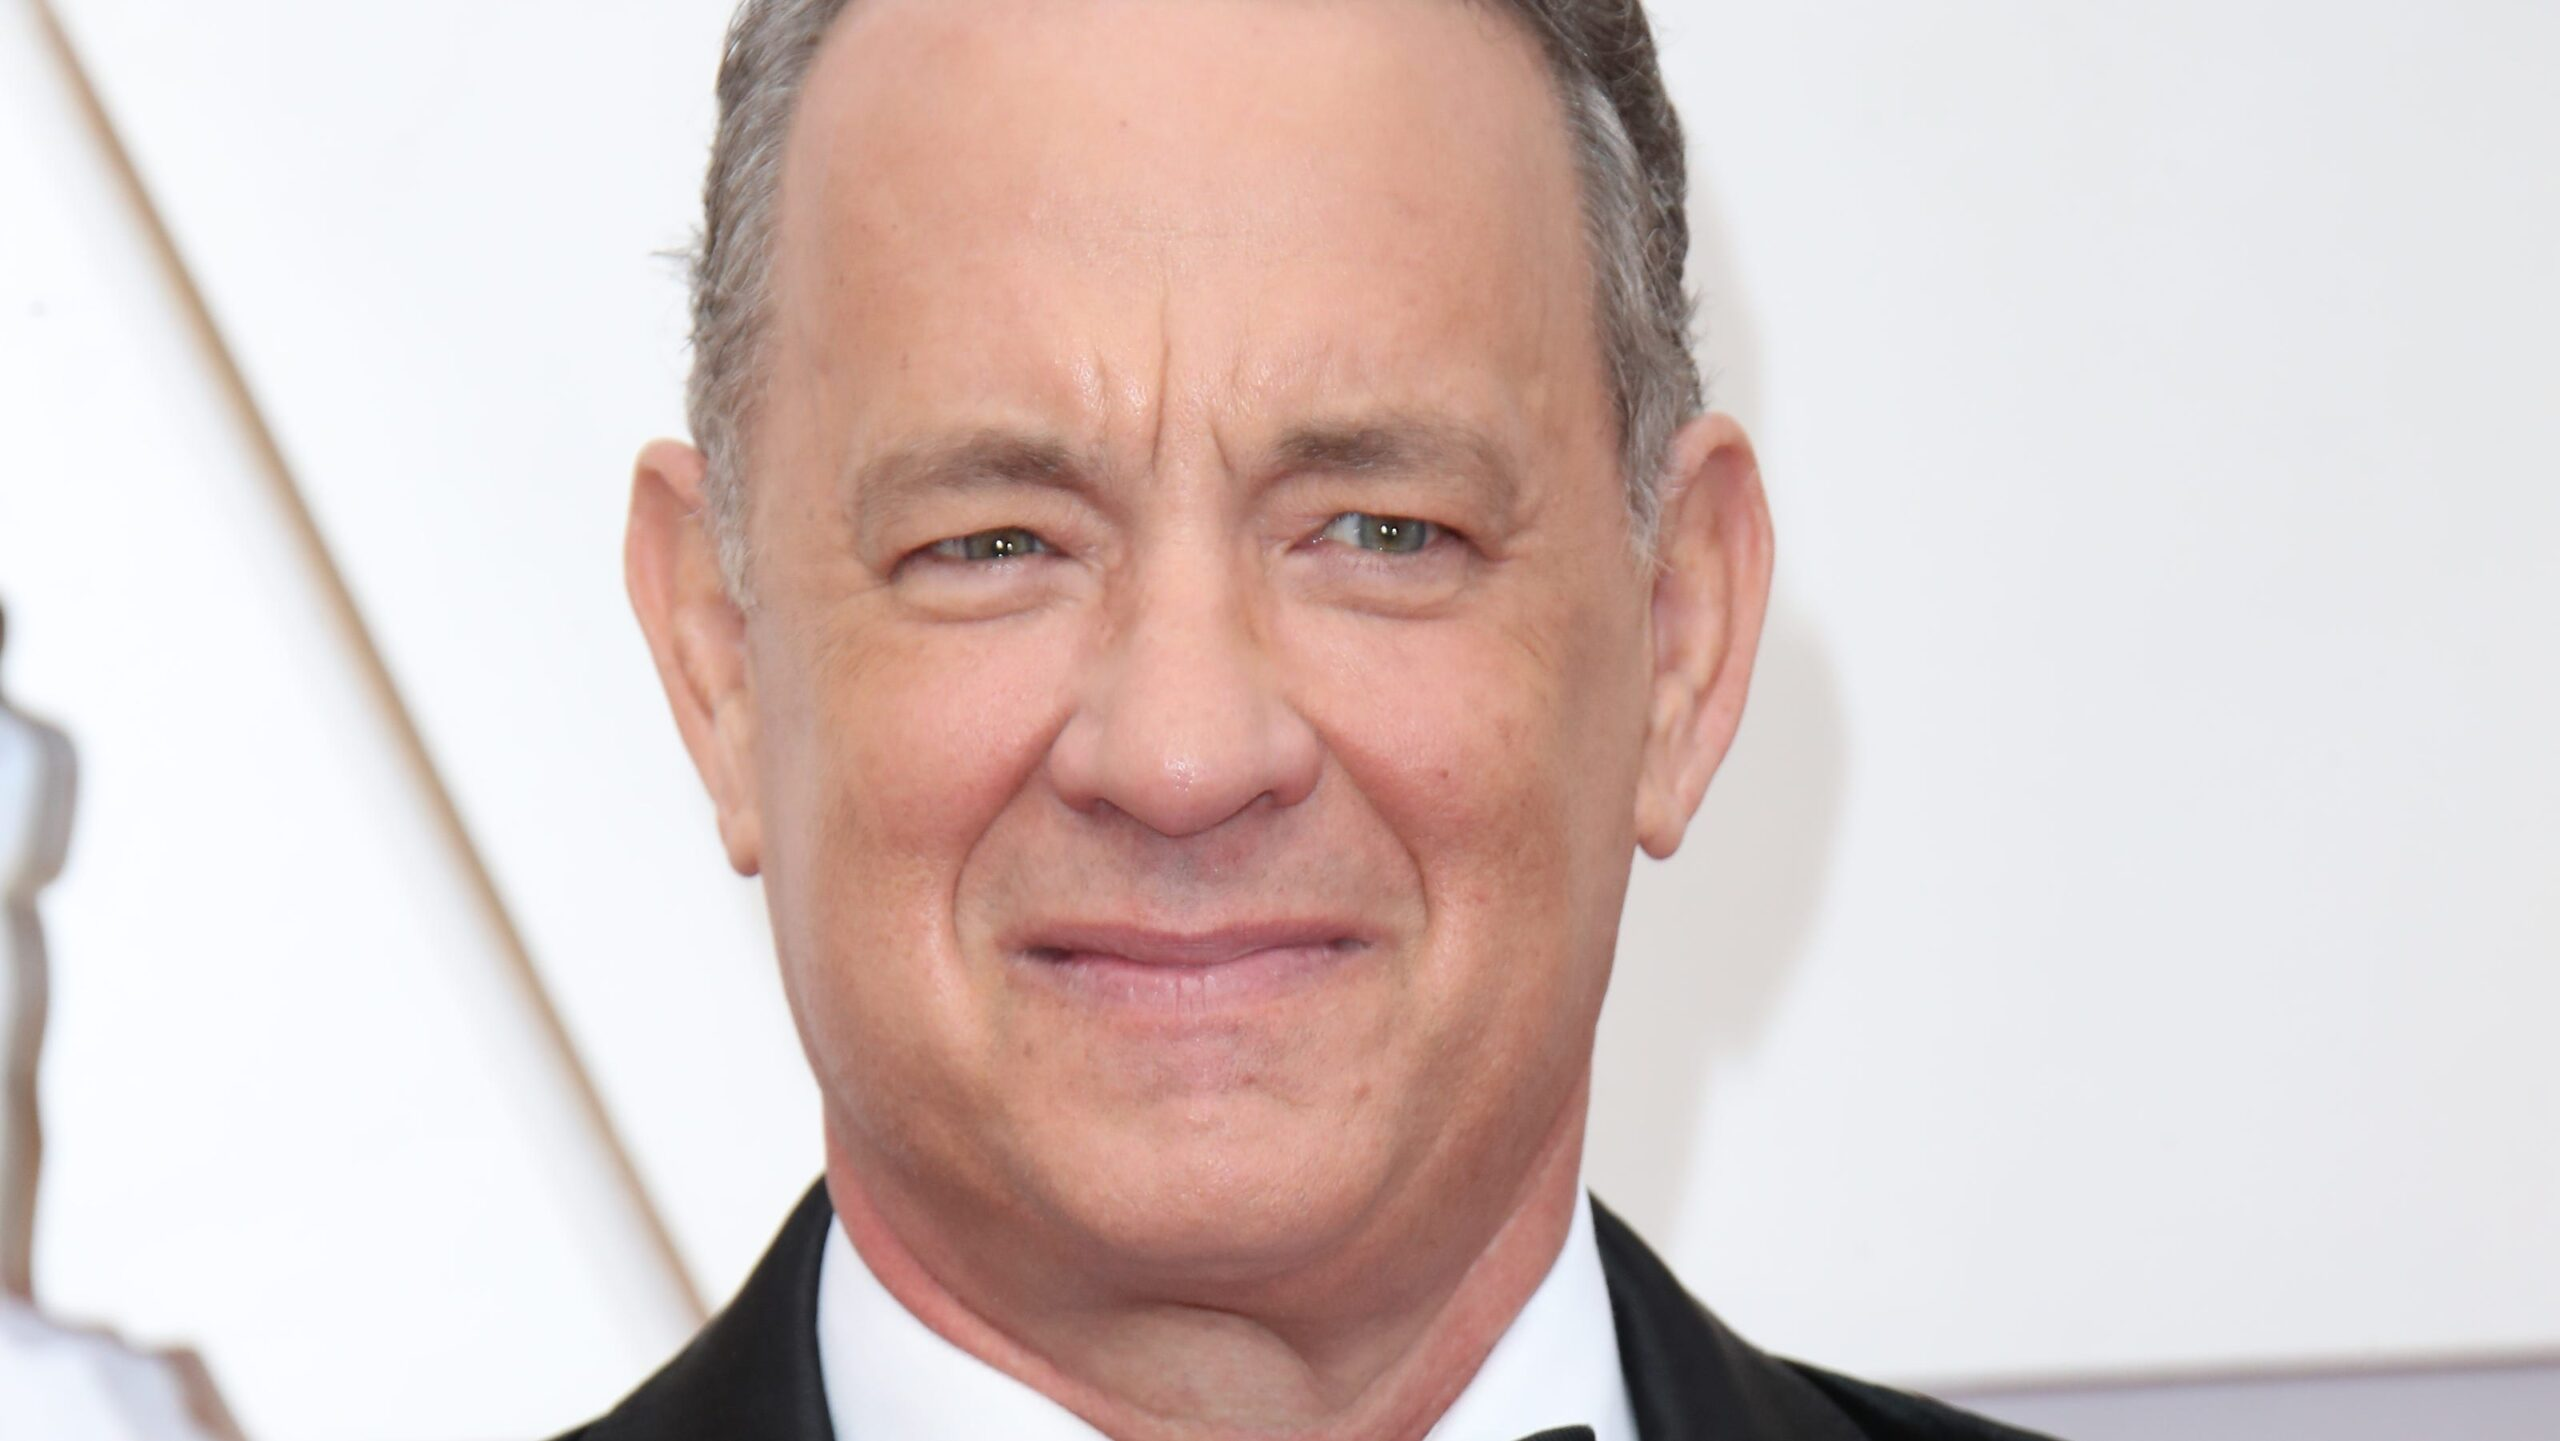 Tom Hanks Biography, Facts & Life Story Updated 2021